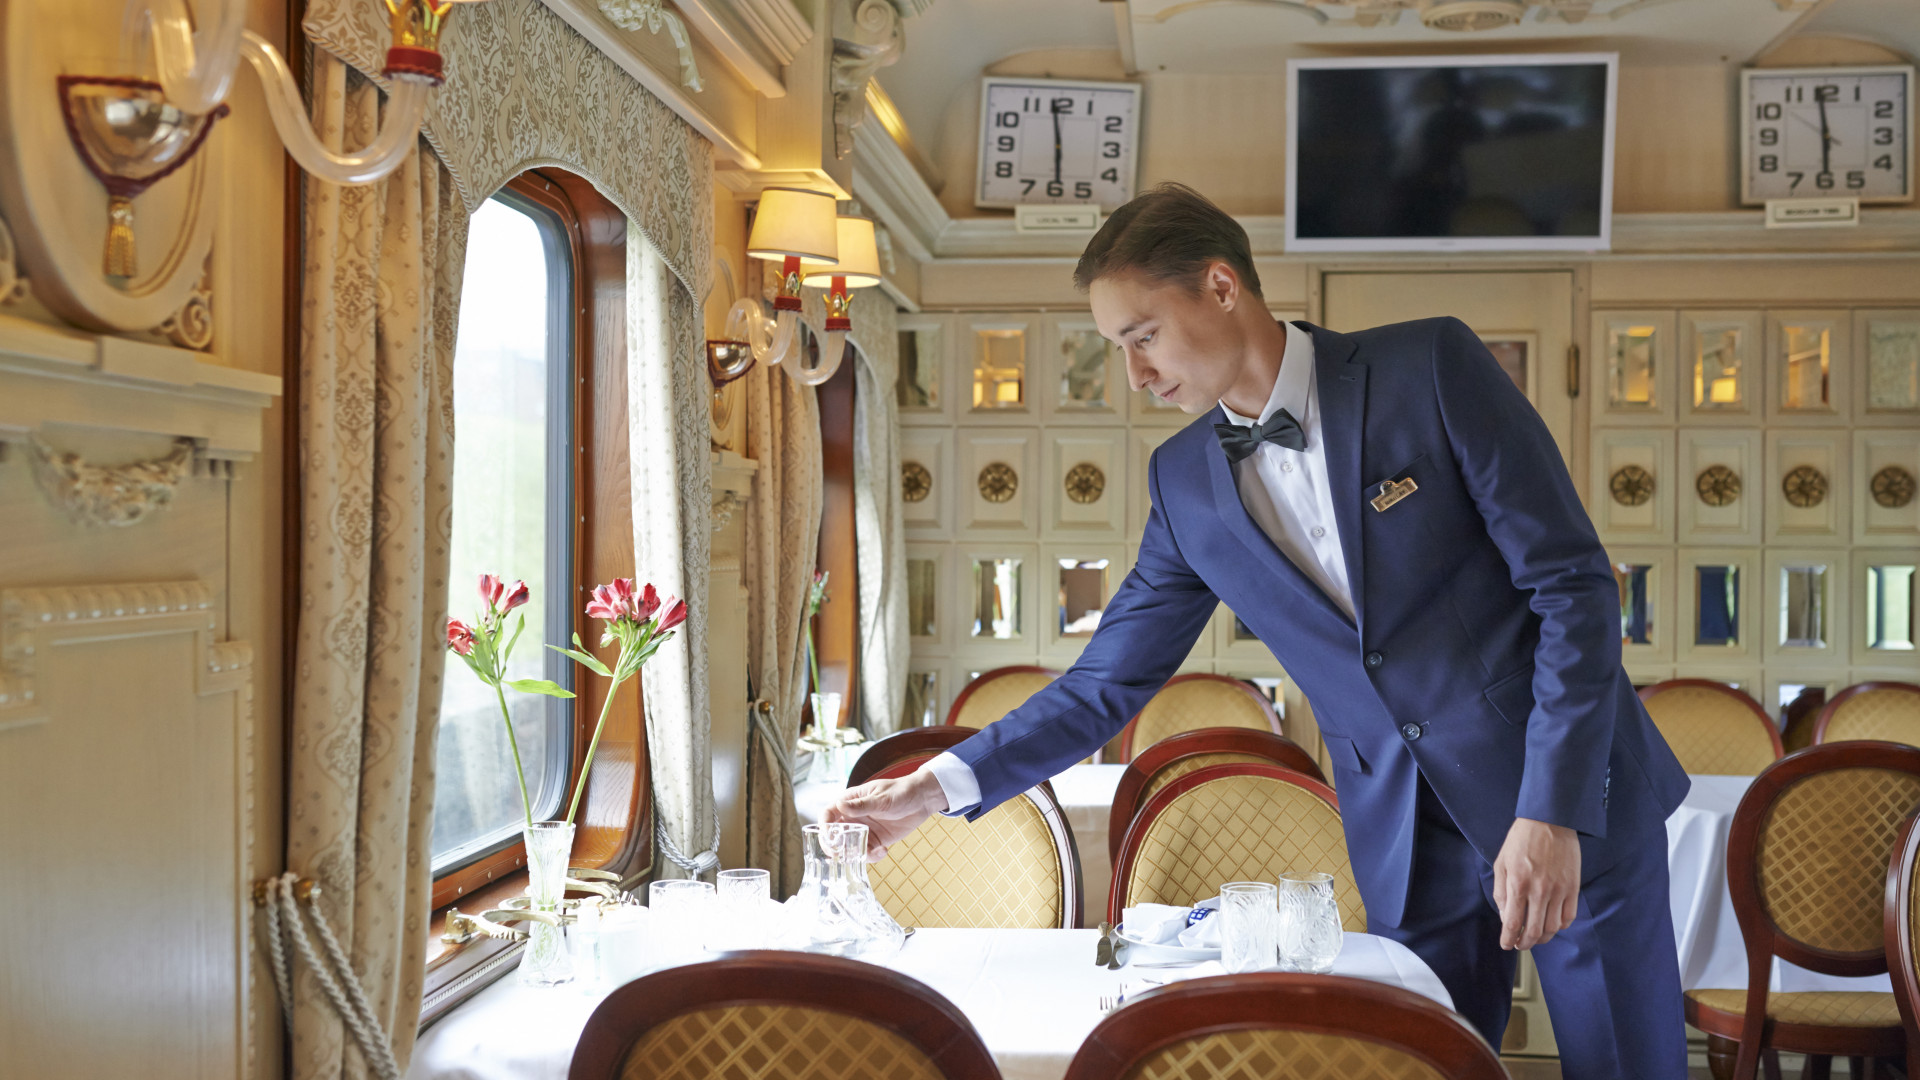 Service aboard the new Golden Eagle luxury train in Russia